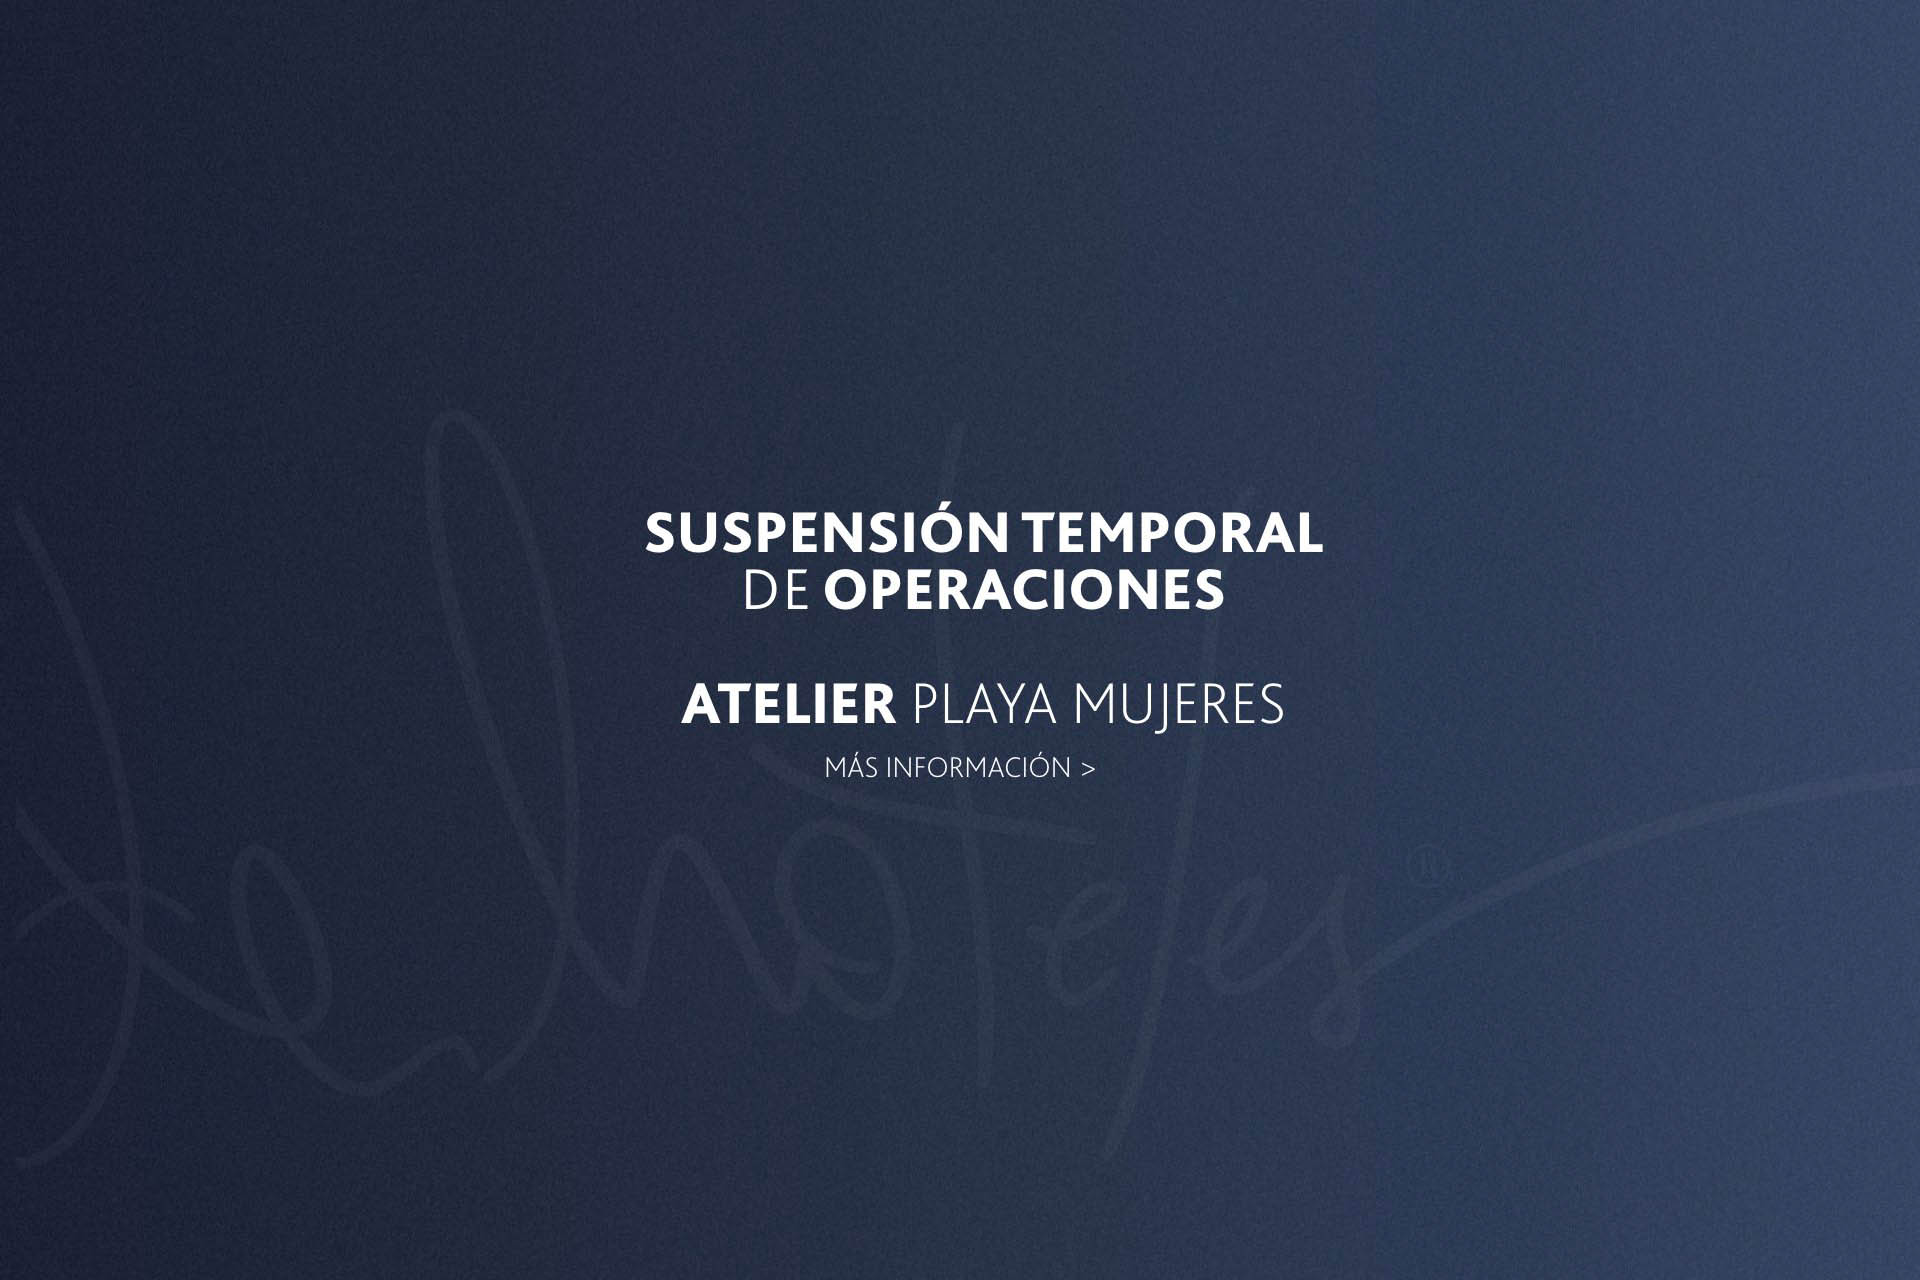 ATELIER PLAYA MUJERES | Suspension temporal de operaciones